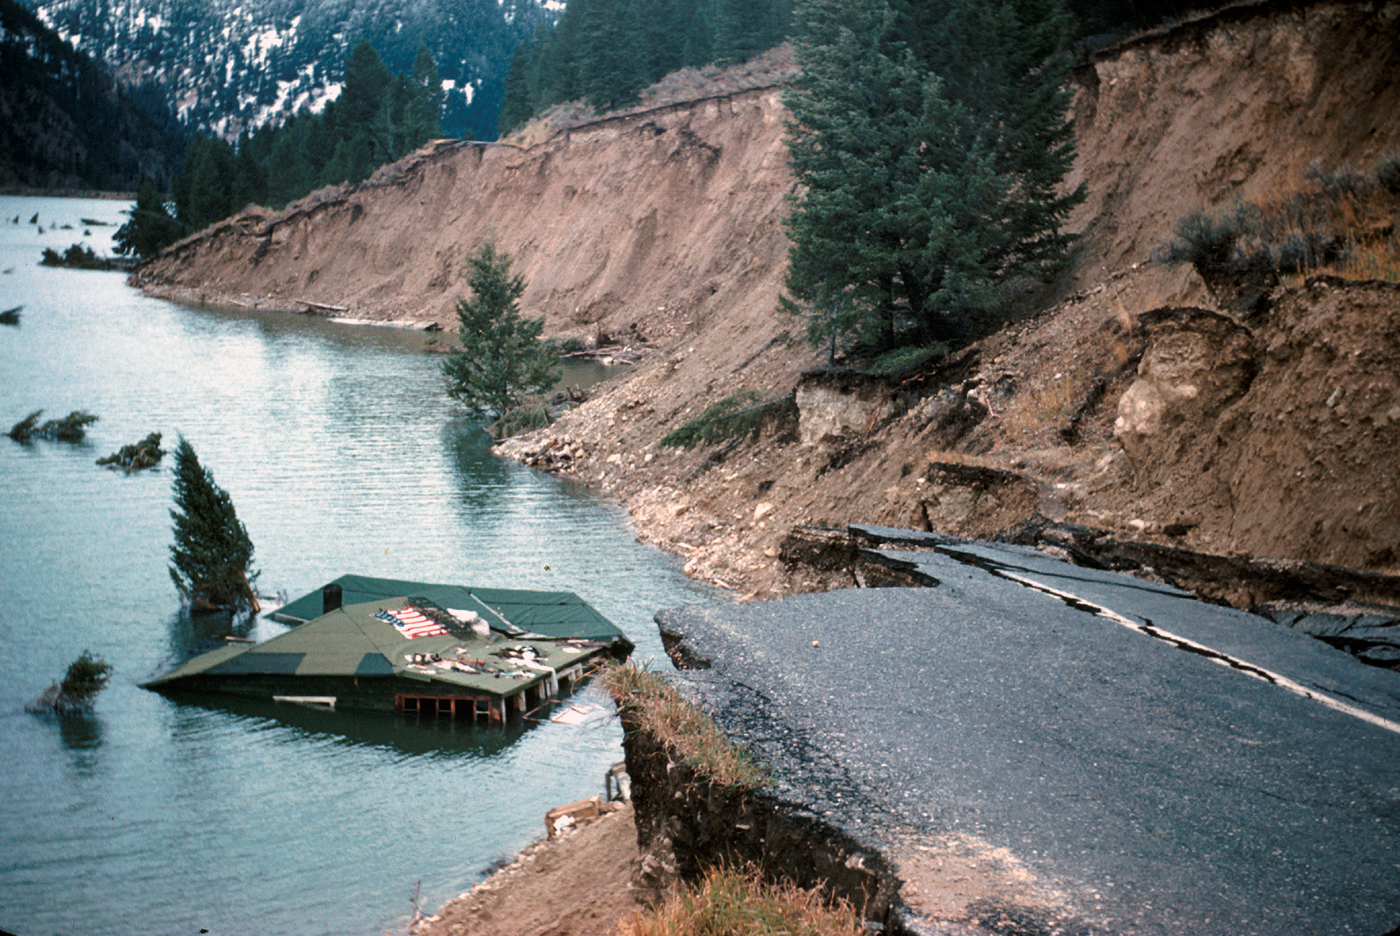 The past is alive: Hebgen Lake M7.3 earthquake in 1959 still influences Yellowstone National Park today